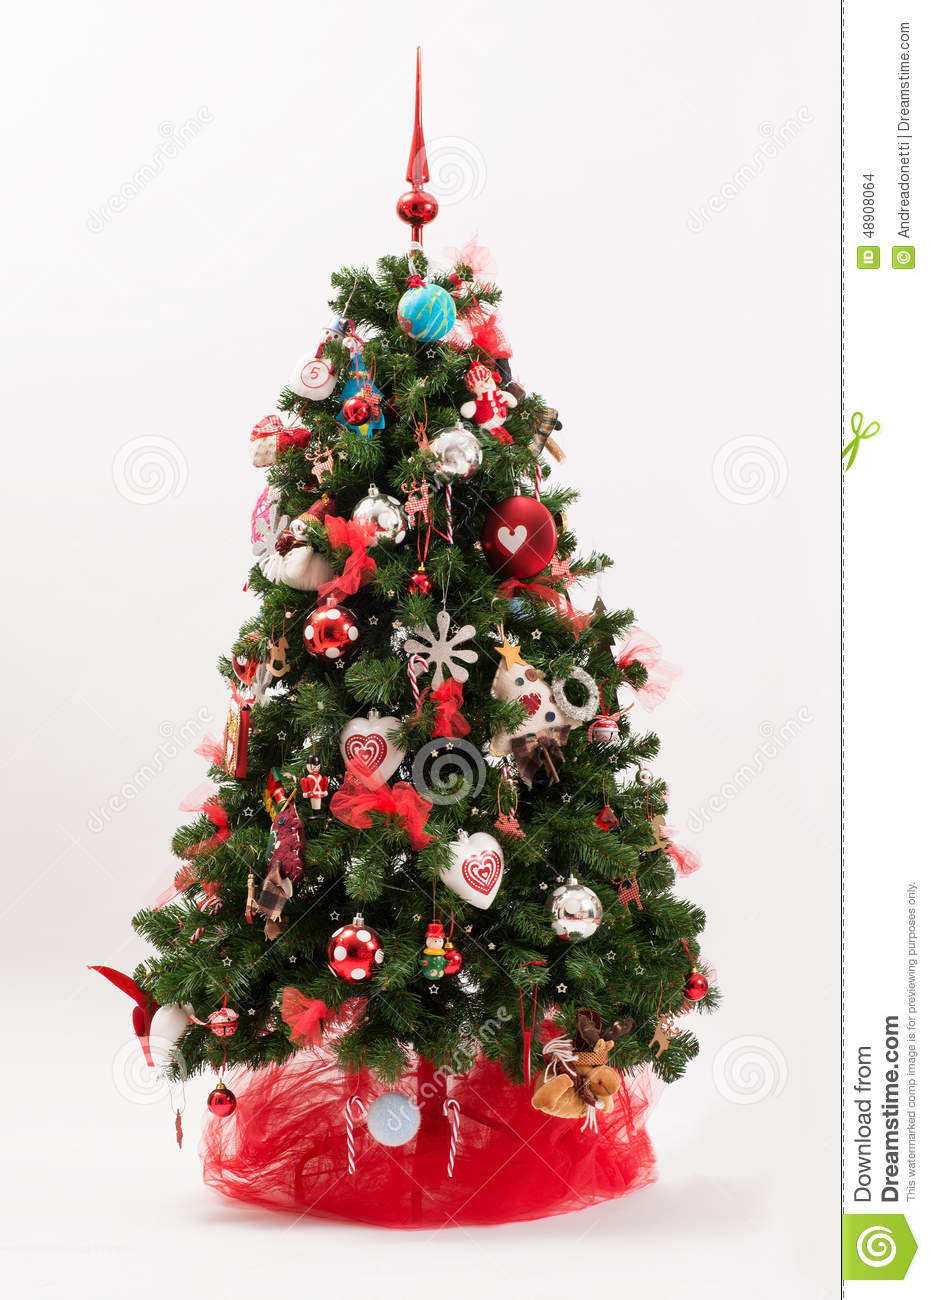 Decorated christmas tree in a red and white theme stock for White tree red ornaments